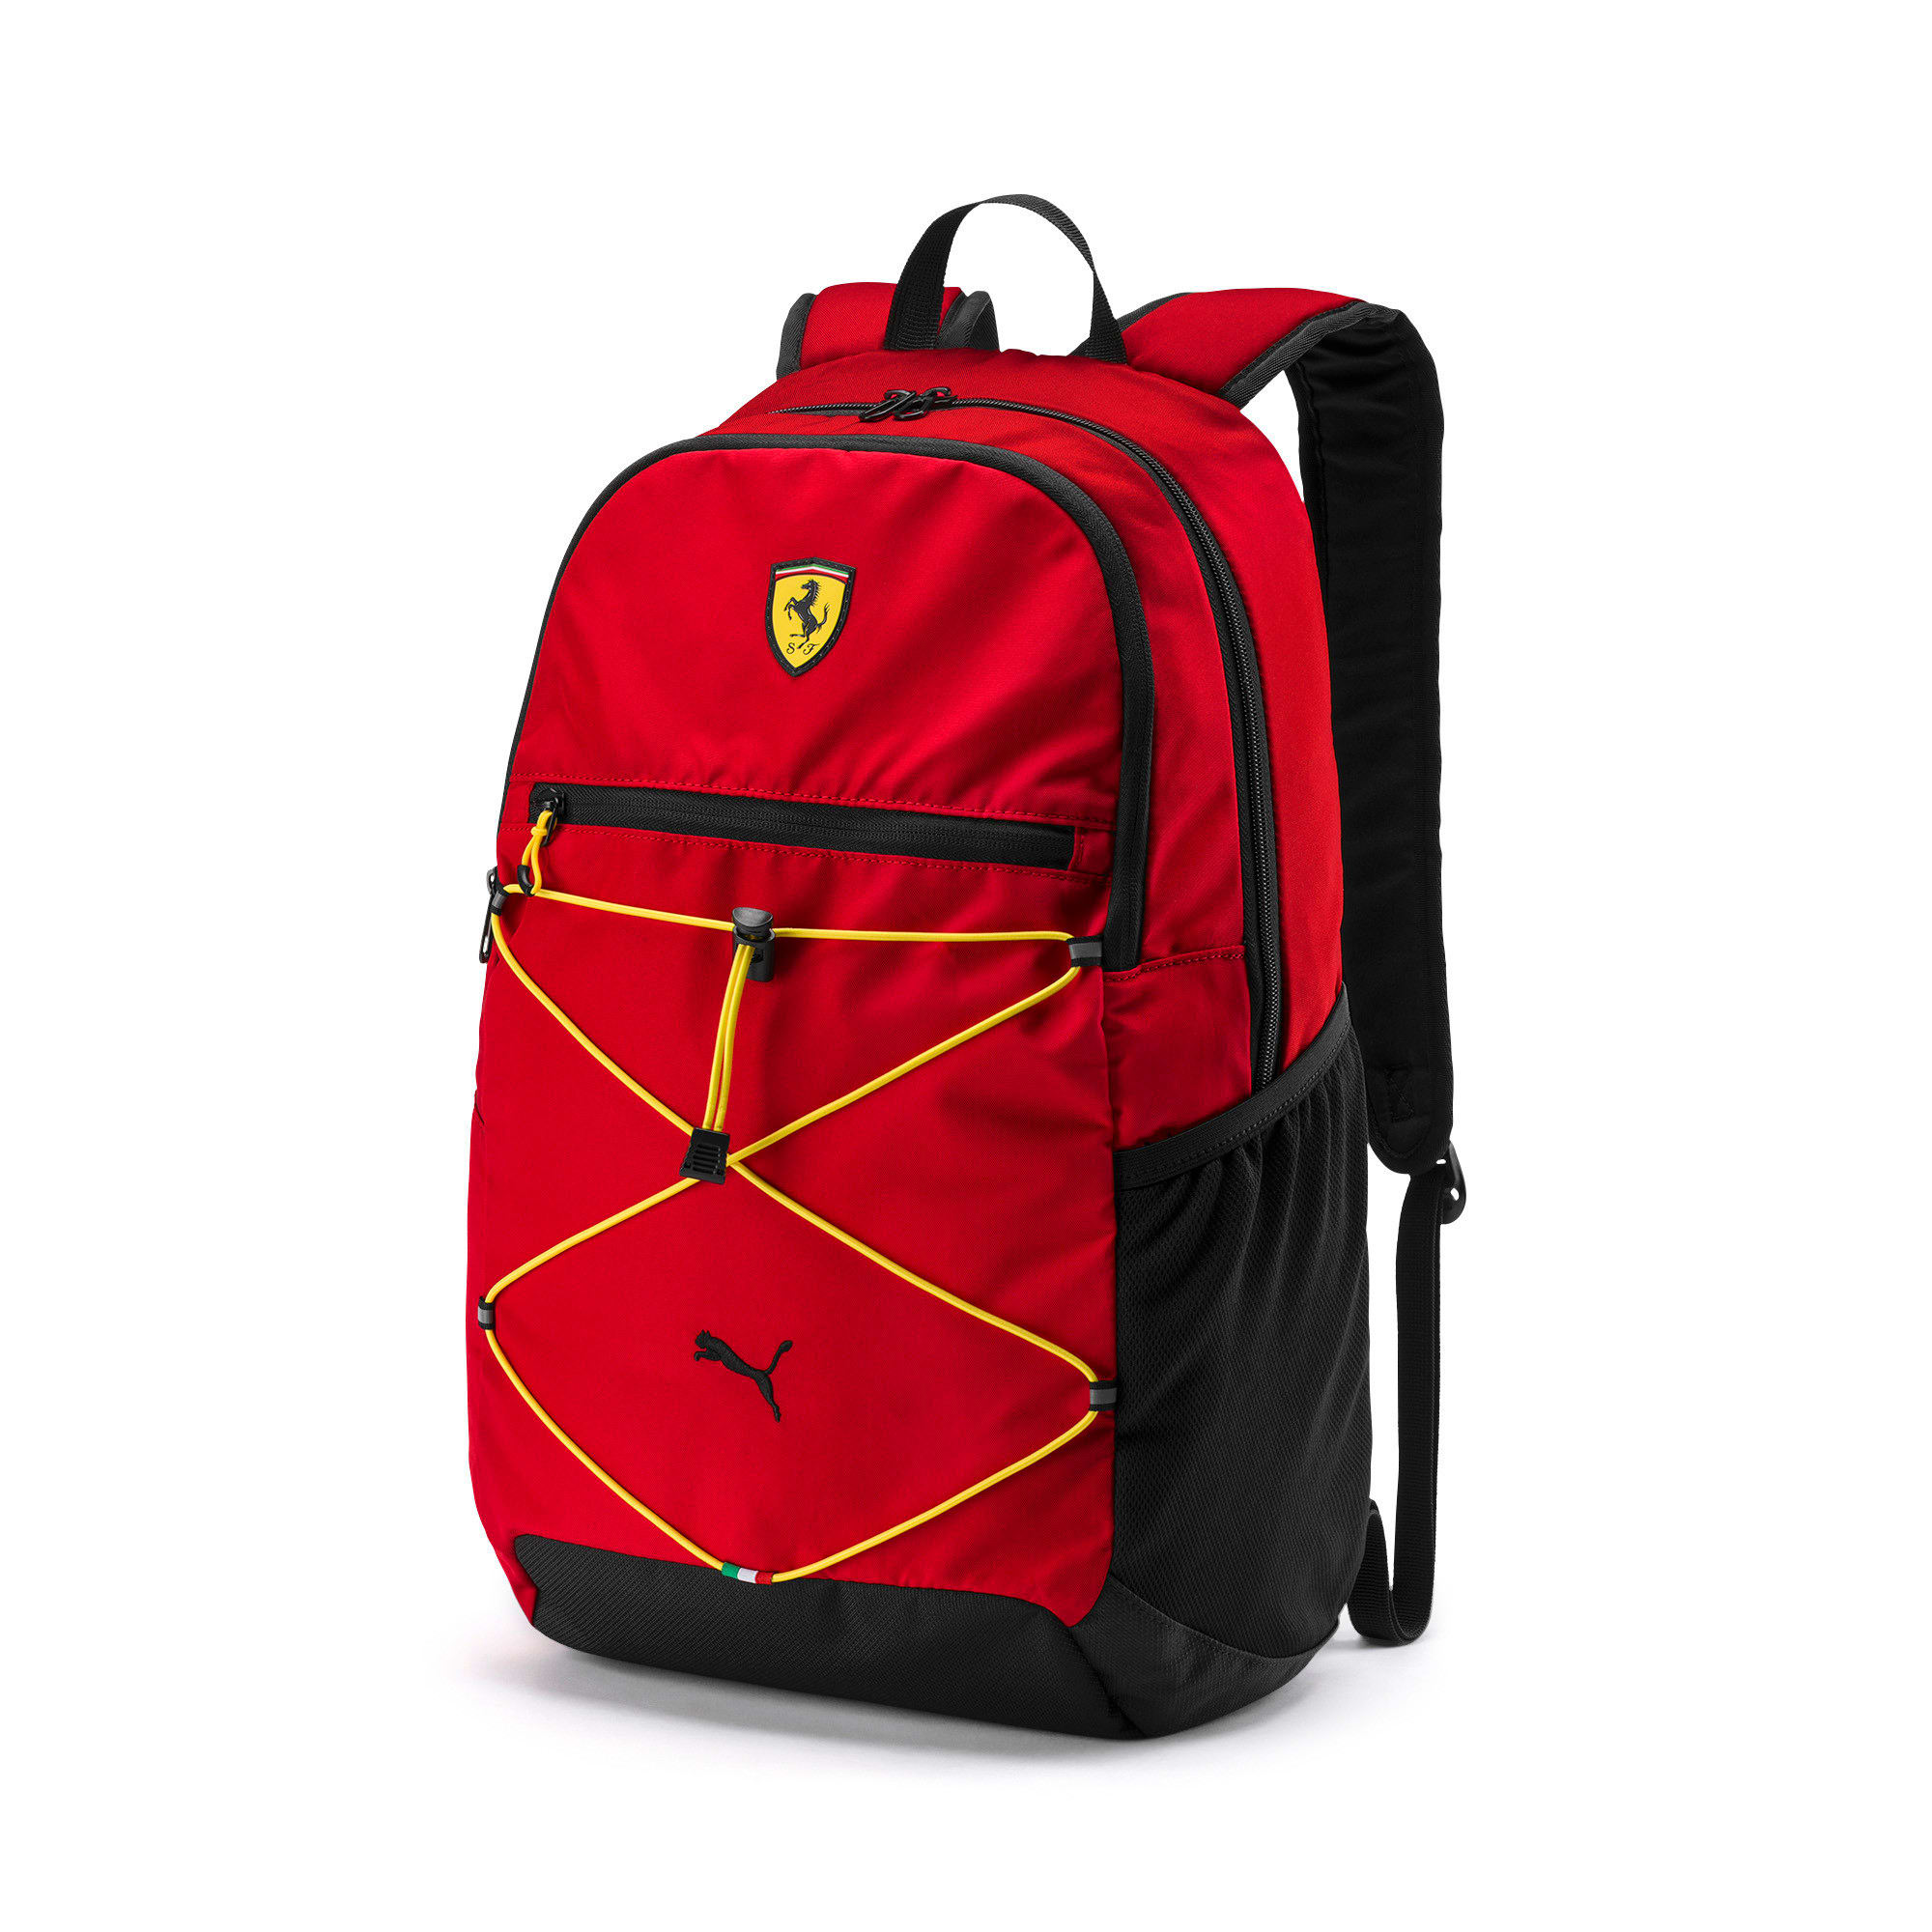 Thumbnail 1 of Scuderia Ferrari Fanwear Backpack, Rosso Corsa, medium